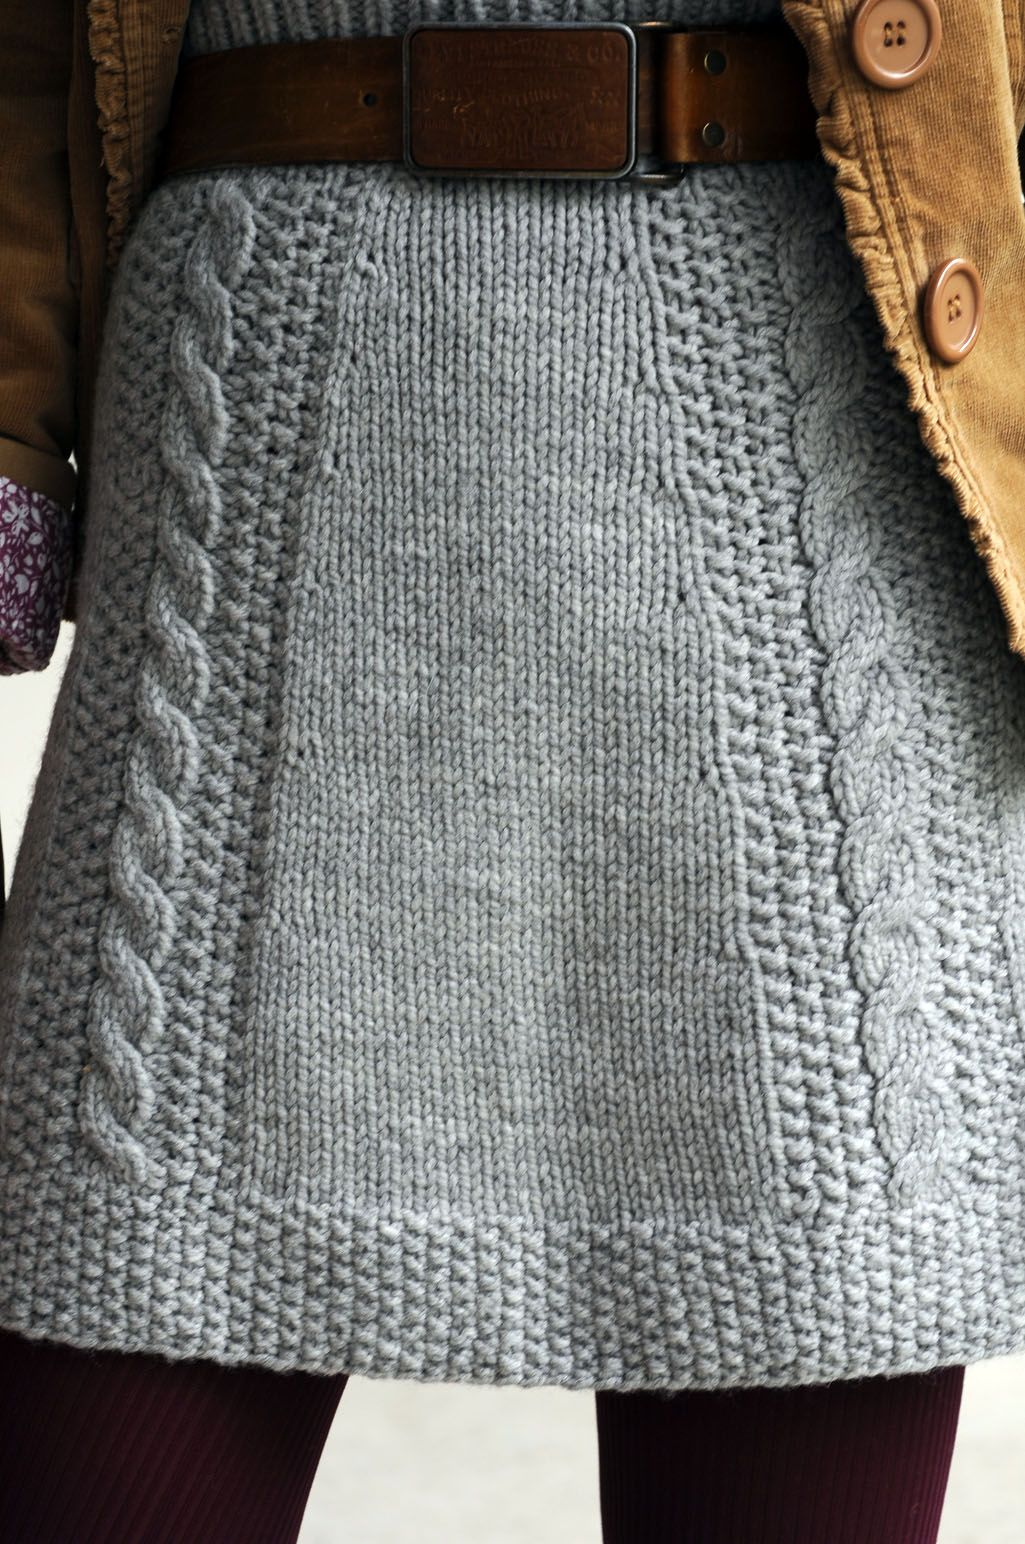 Knitted Yarn Patterns and Knitting Tutorials (With images ...